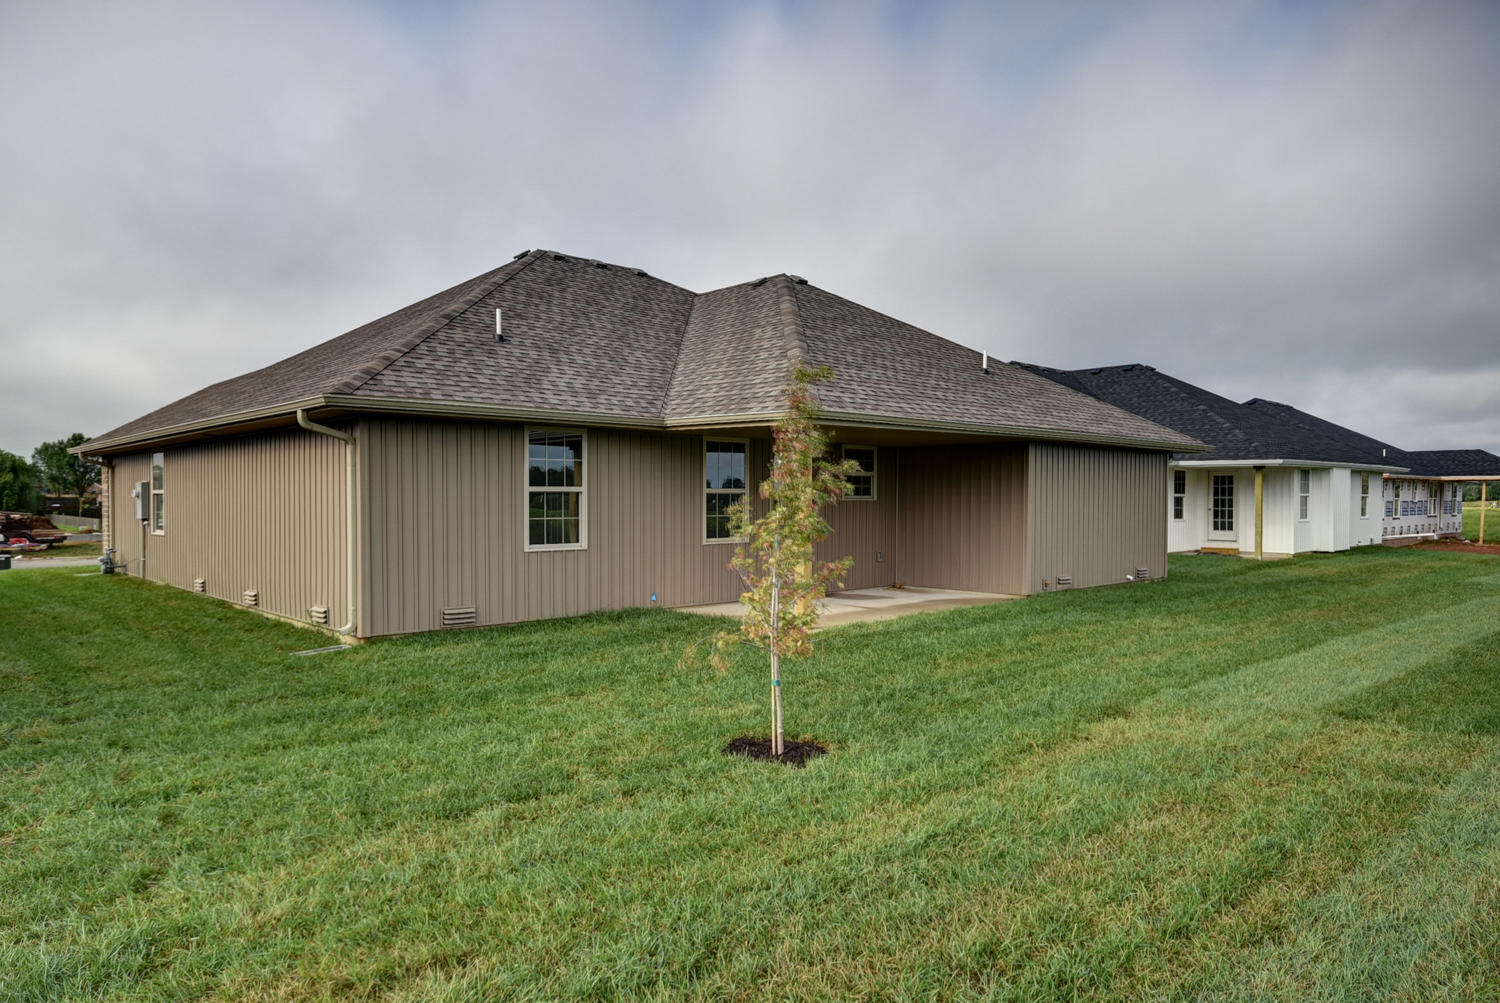 863 East Melton Road Ozark, MO 65721